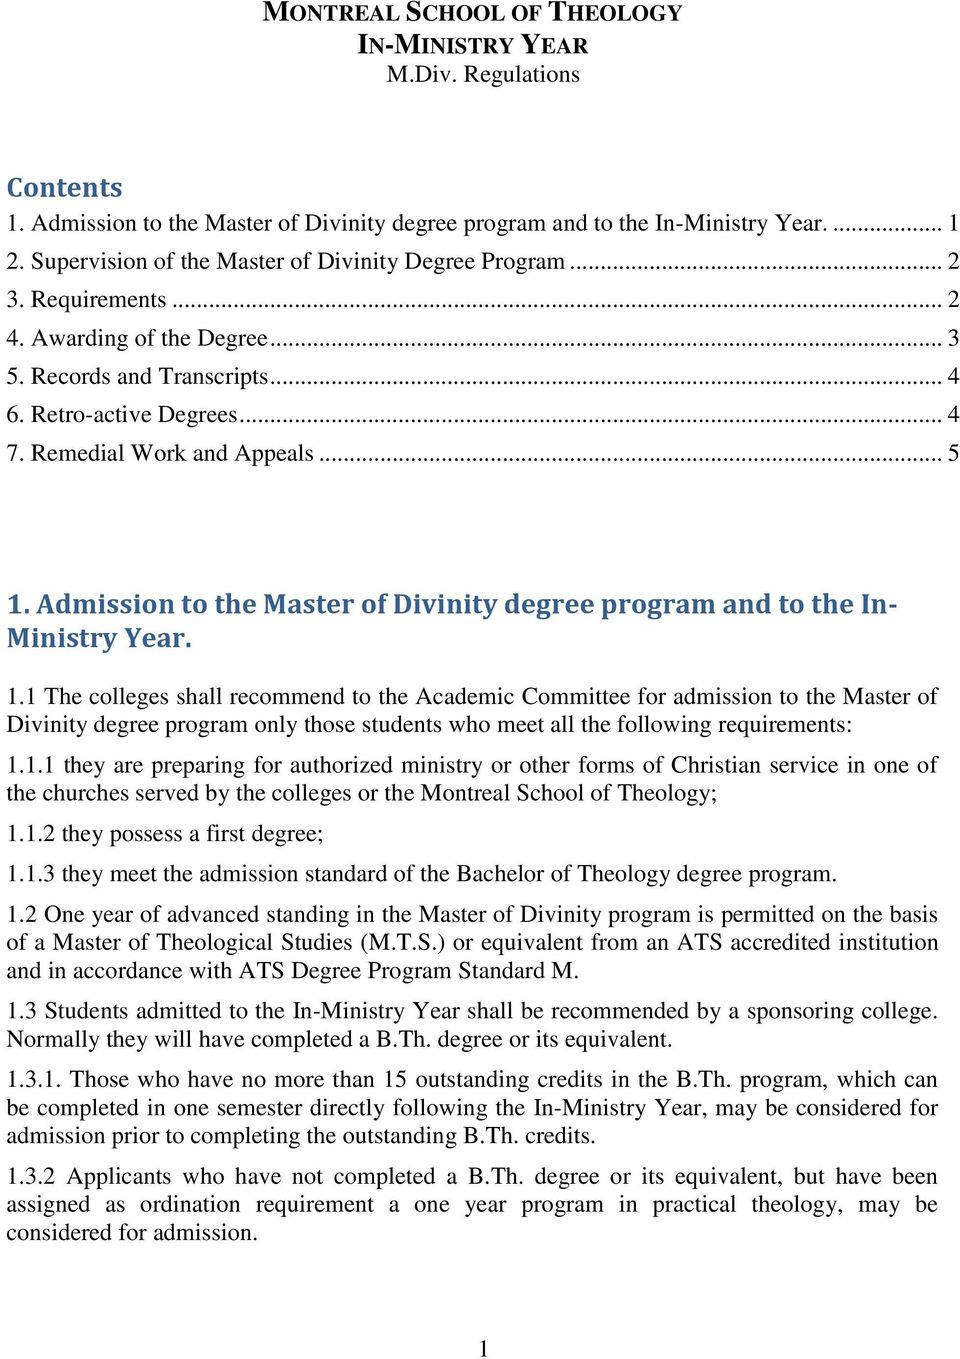 .. 5 1. Admission to the Master of Divinity degree program and to the In- Ministry Year. 1.1 The colleges shall recommend to the Academic Committee for admission to the Master of Divinity degree program only those students who meet all the following requirements: 1.